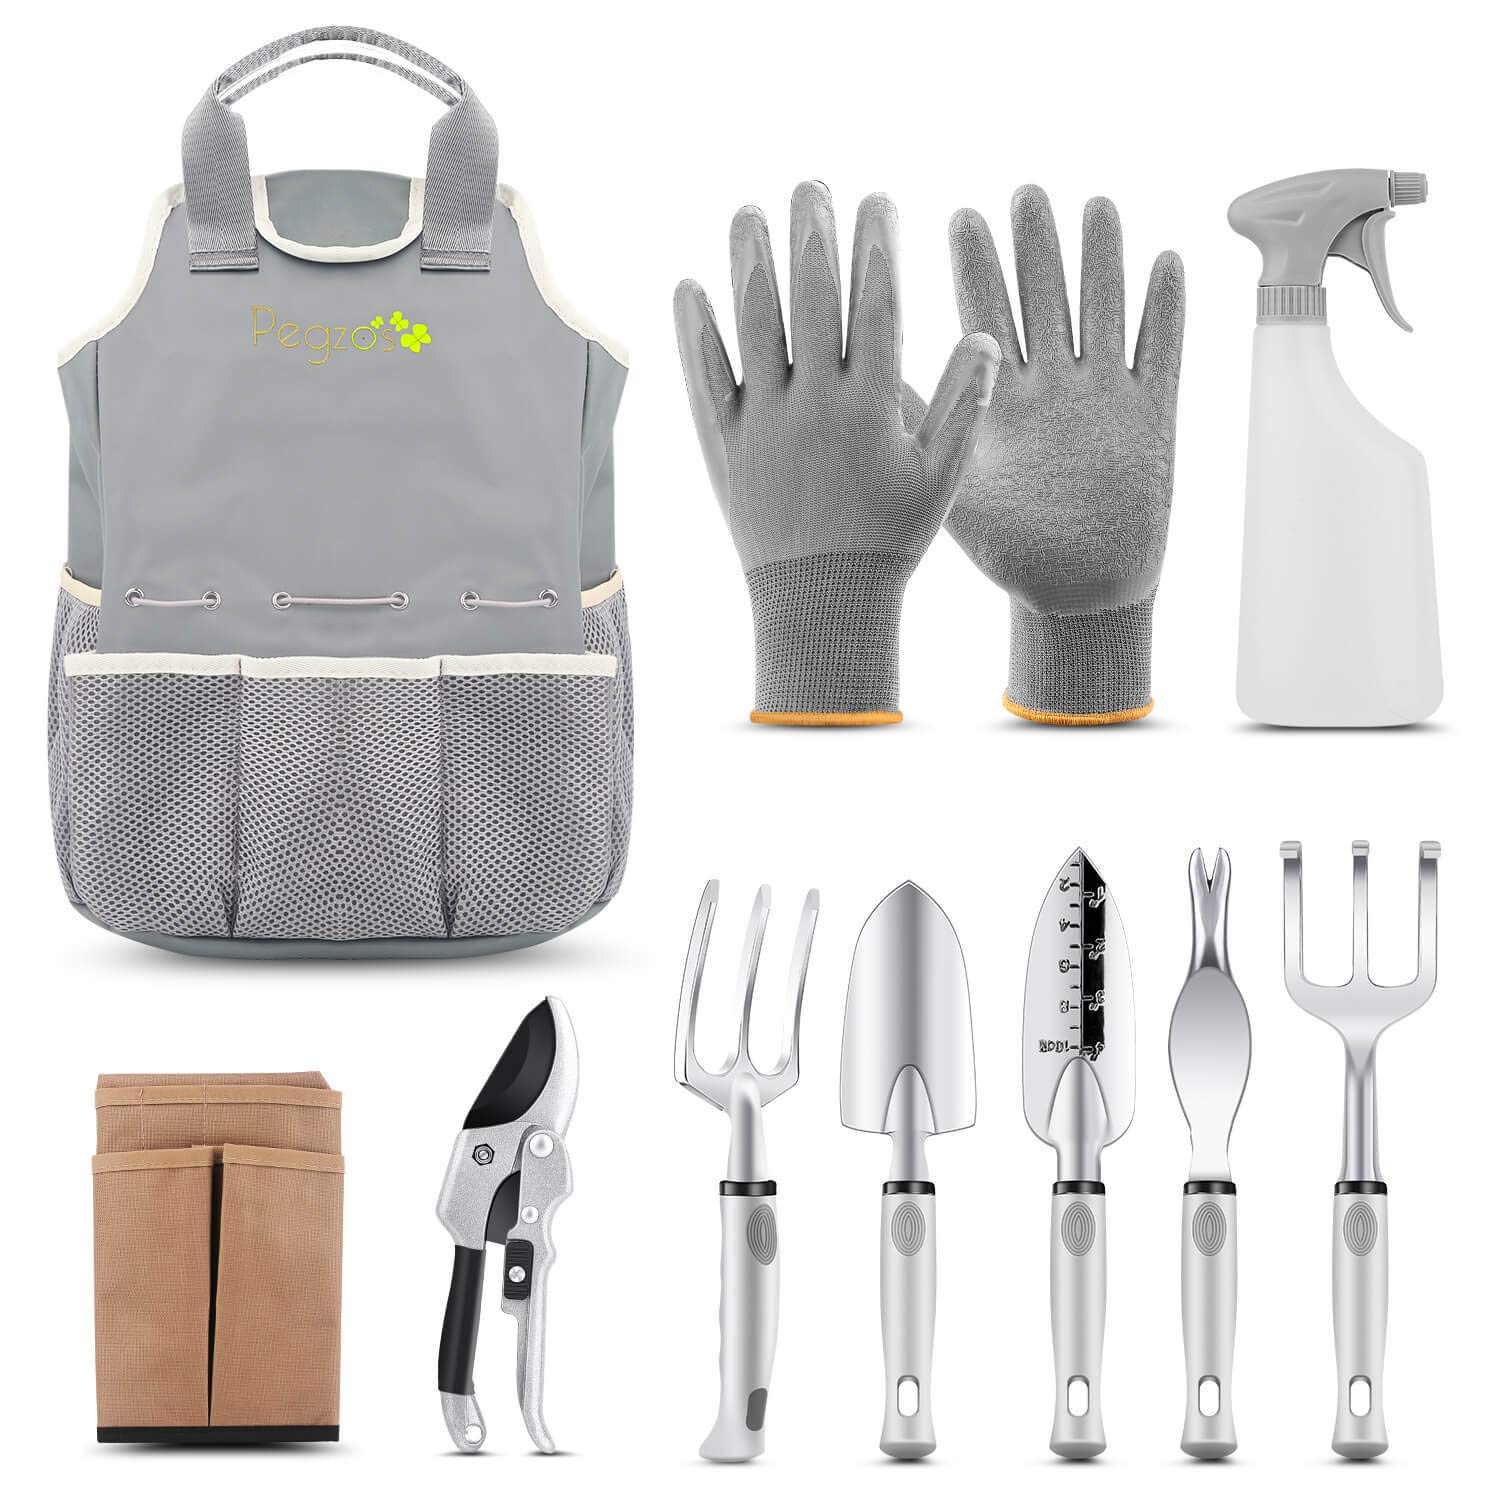 PEGZOS 10 Piece Gardening Tools Set with Storage Tote and Garden Gloves